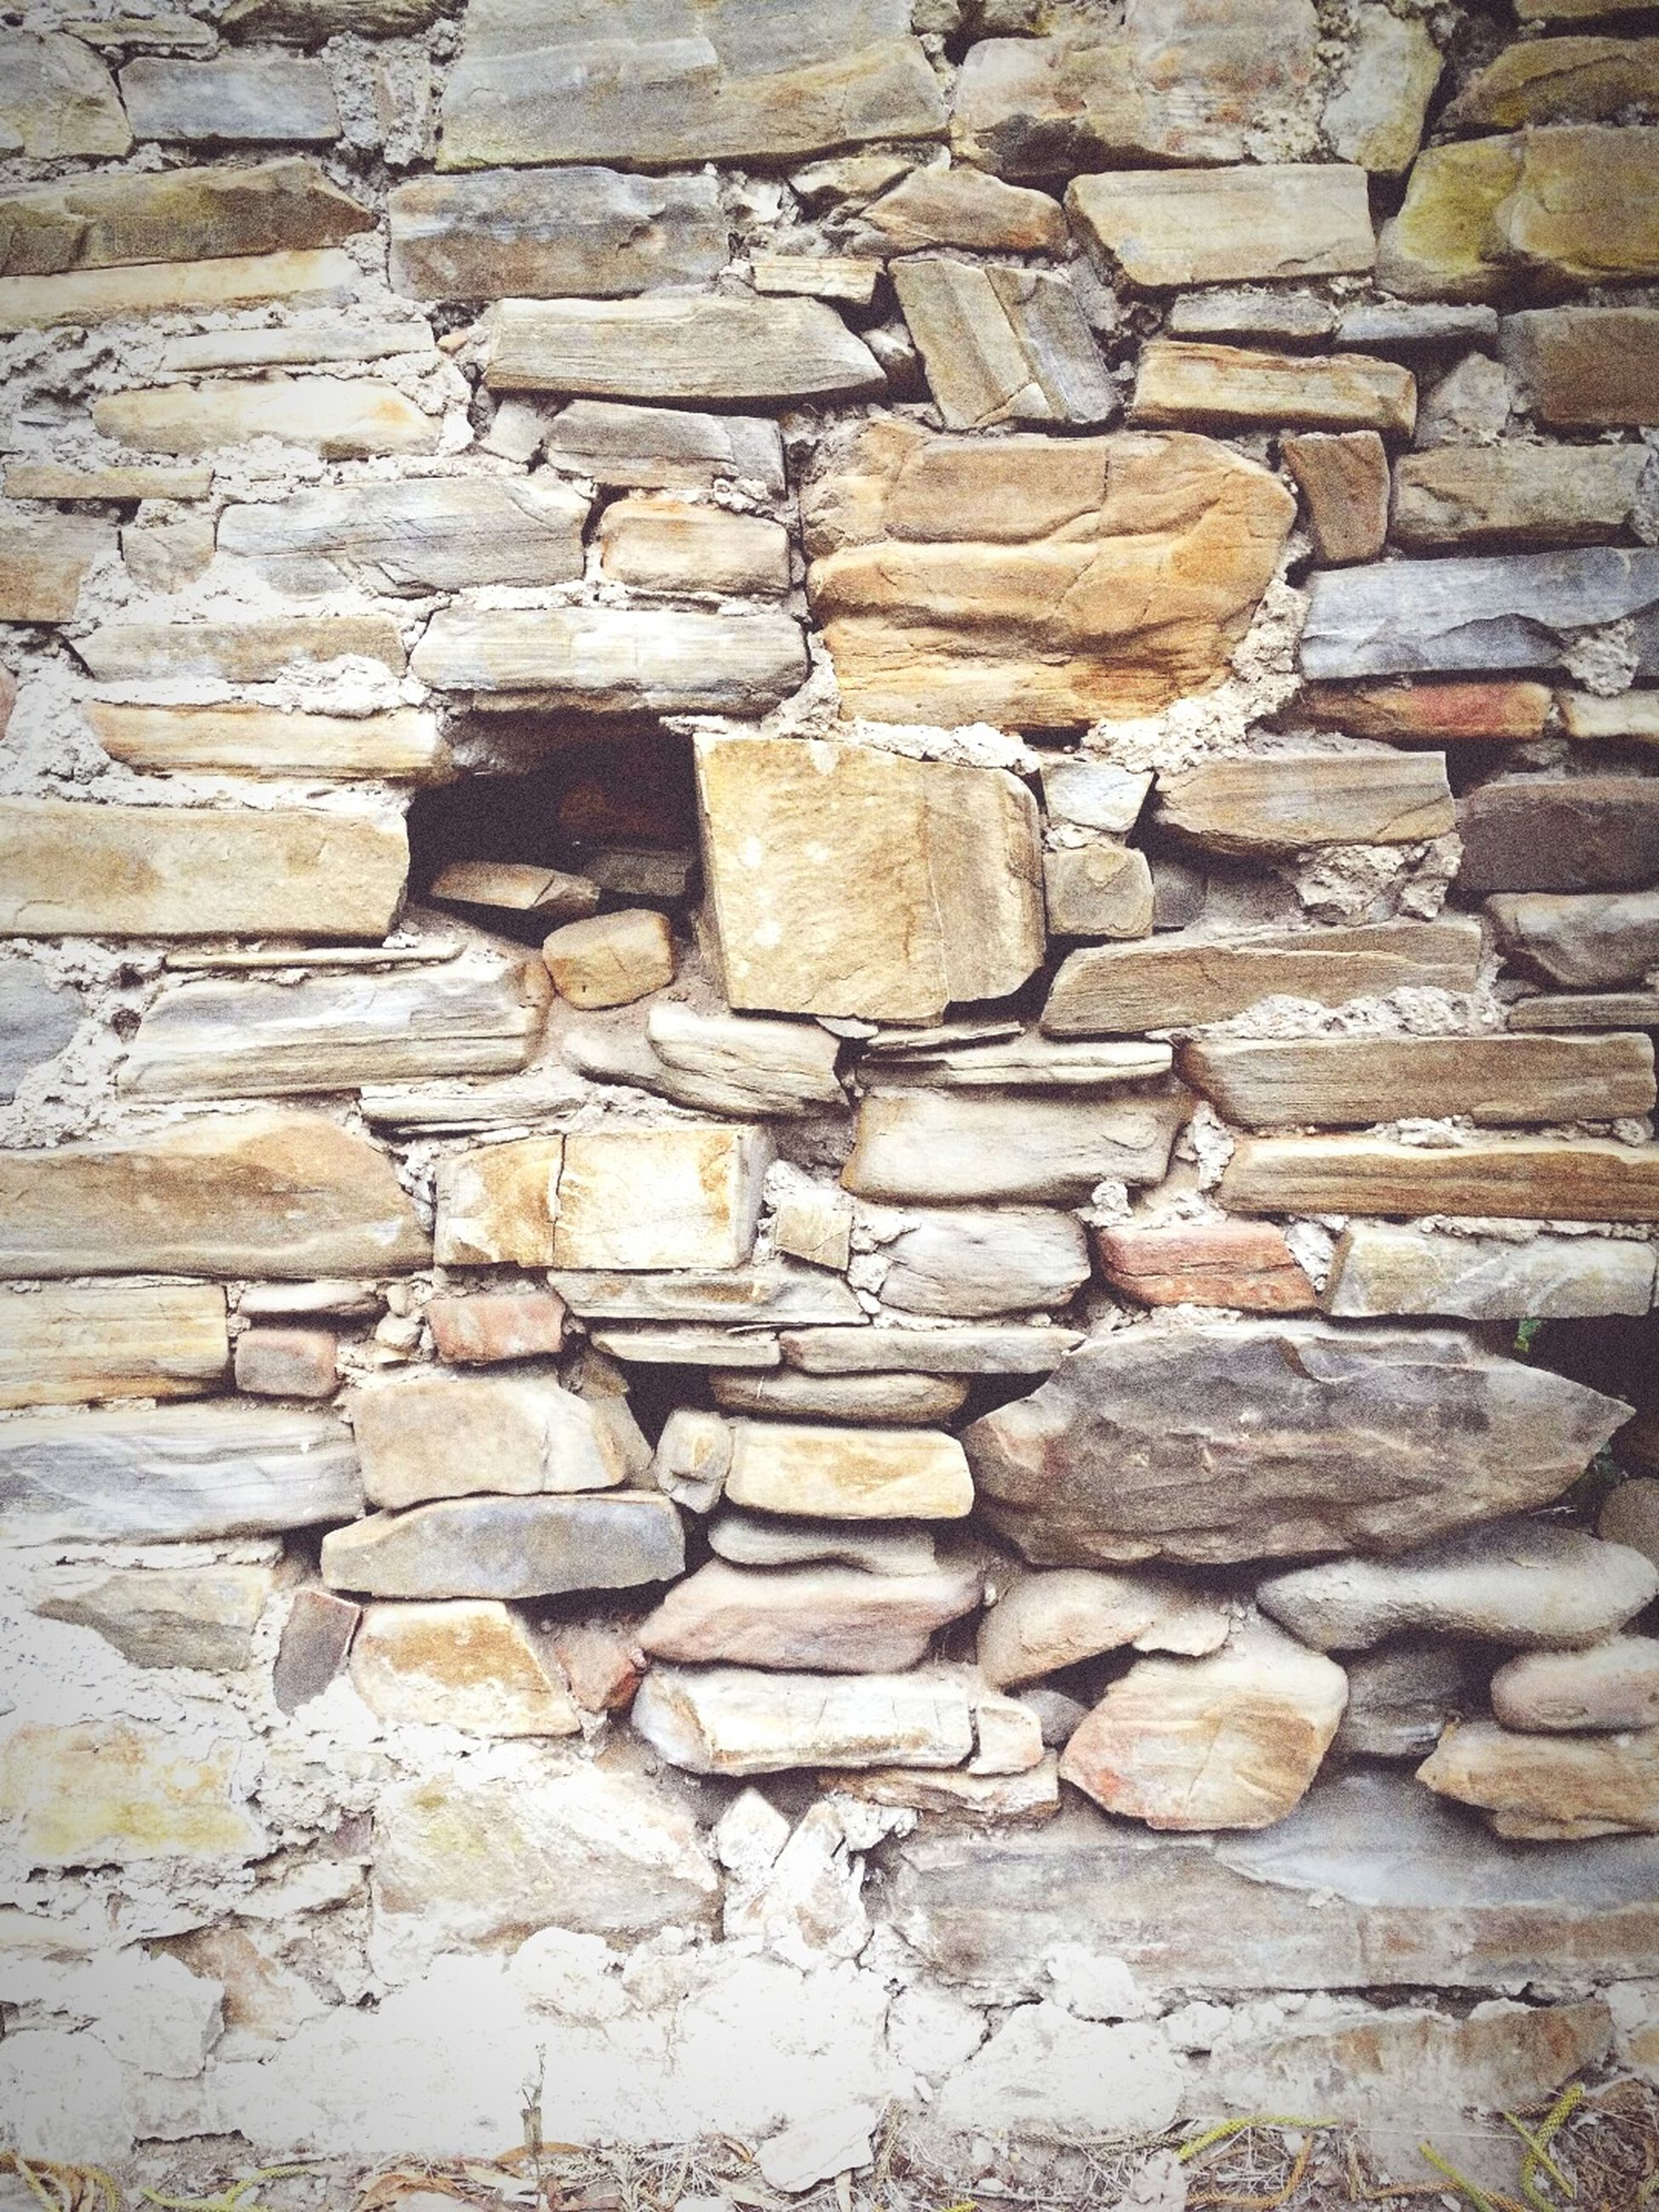 full frame, brick wall, textured, stone wall, backgrounds, wall - building feature, rough, architecture, built structure, pattern, weathered, brick, old, wall, close-up, no people, day, outdoors, stone, damaged